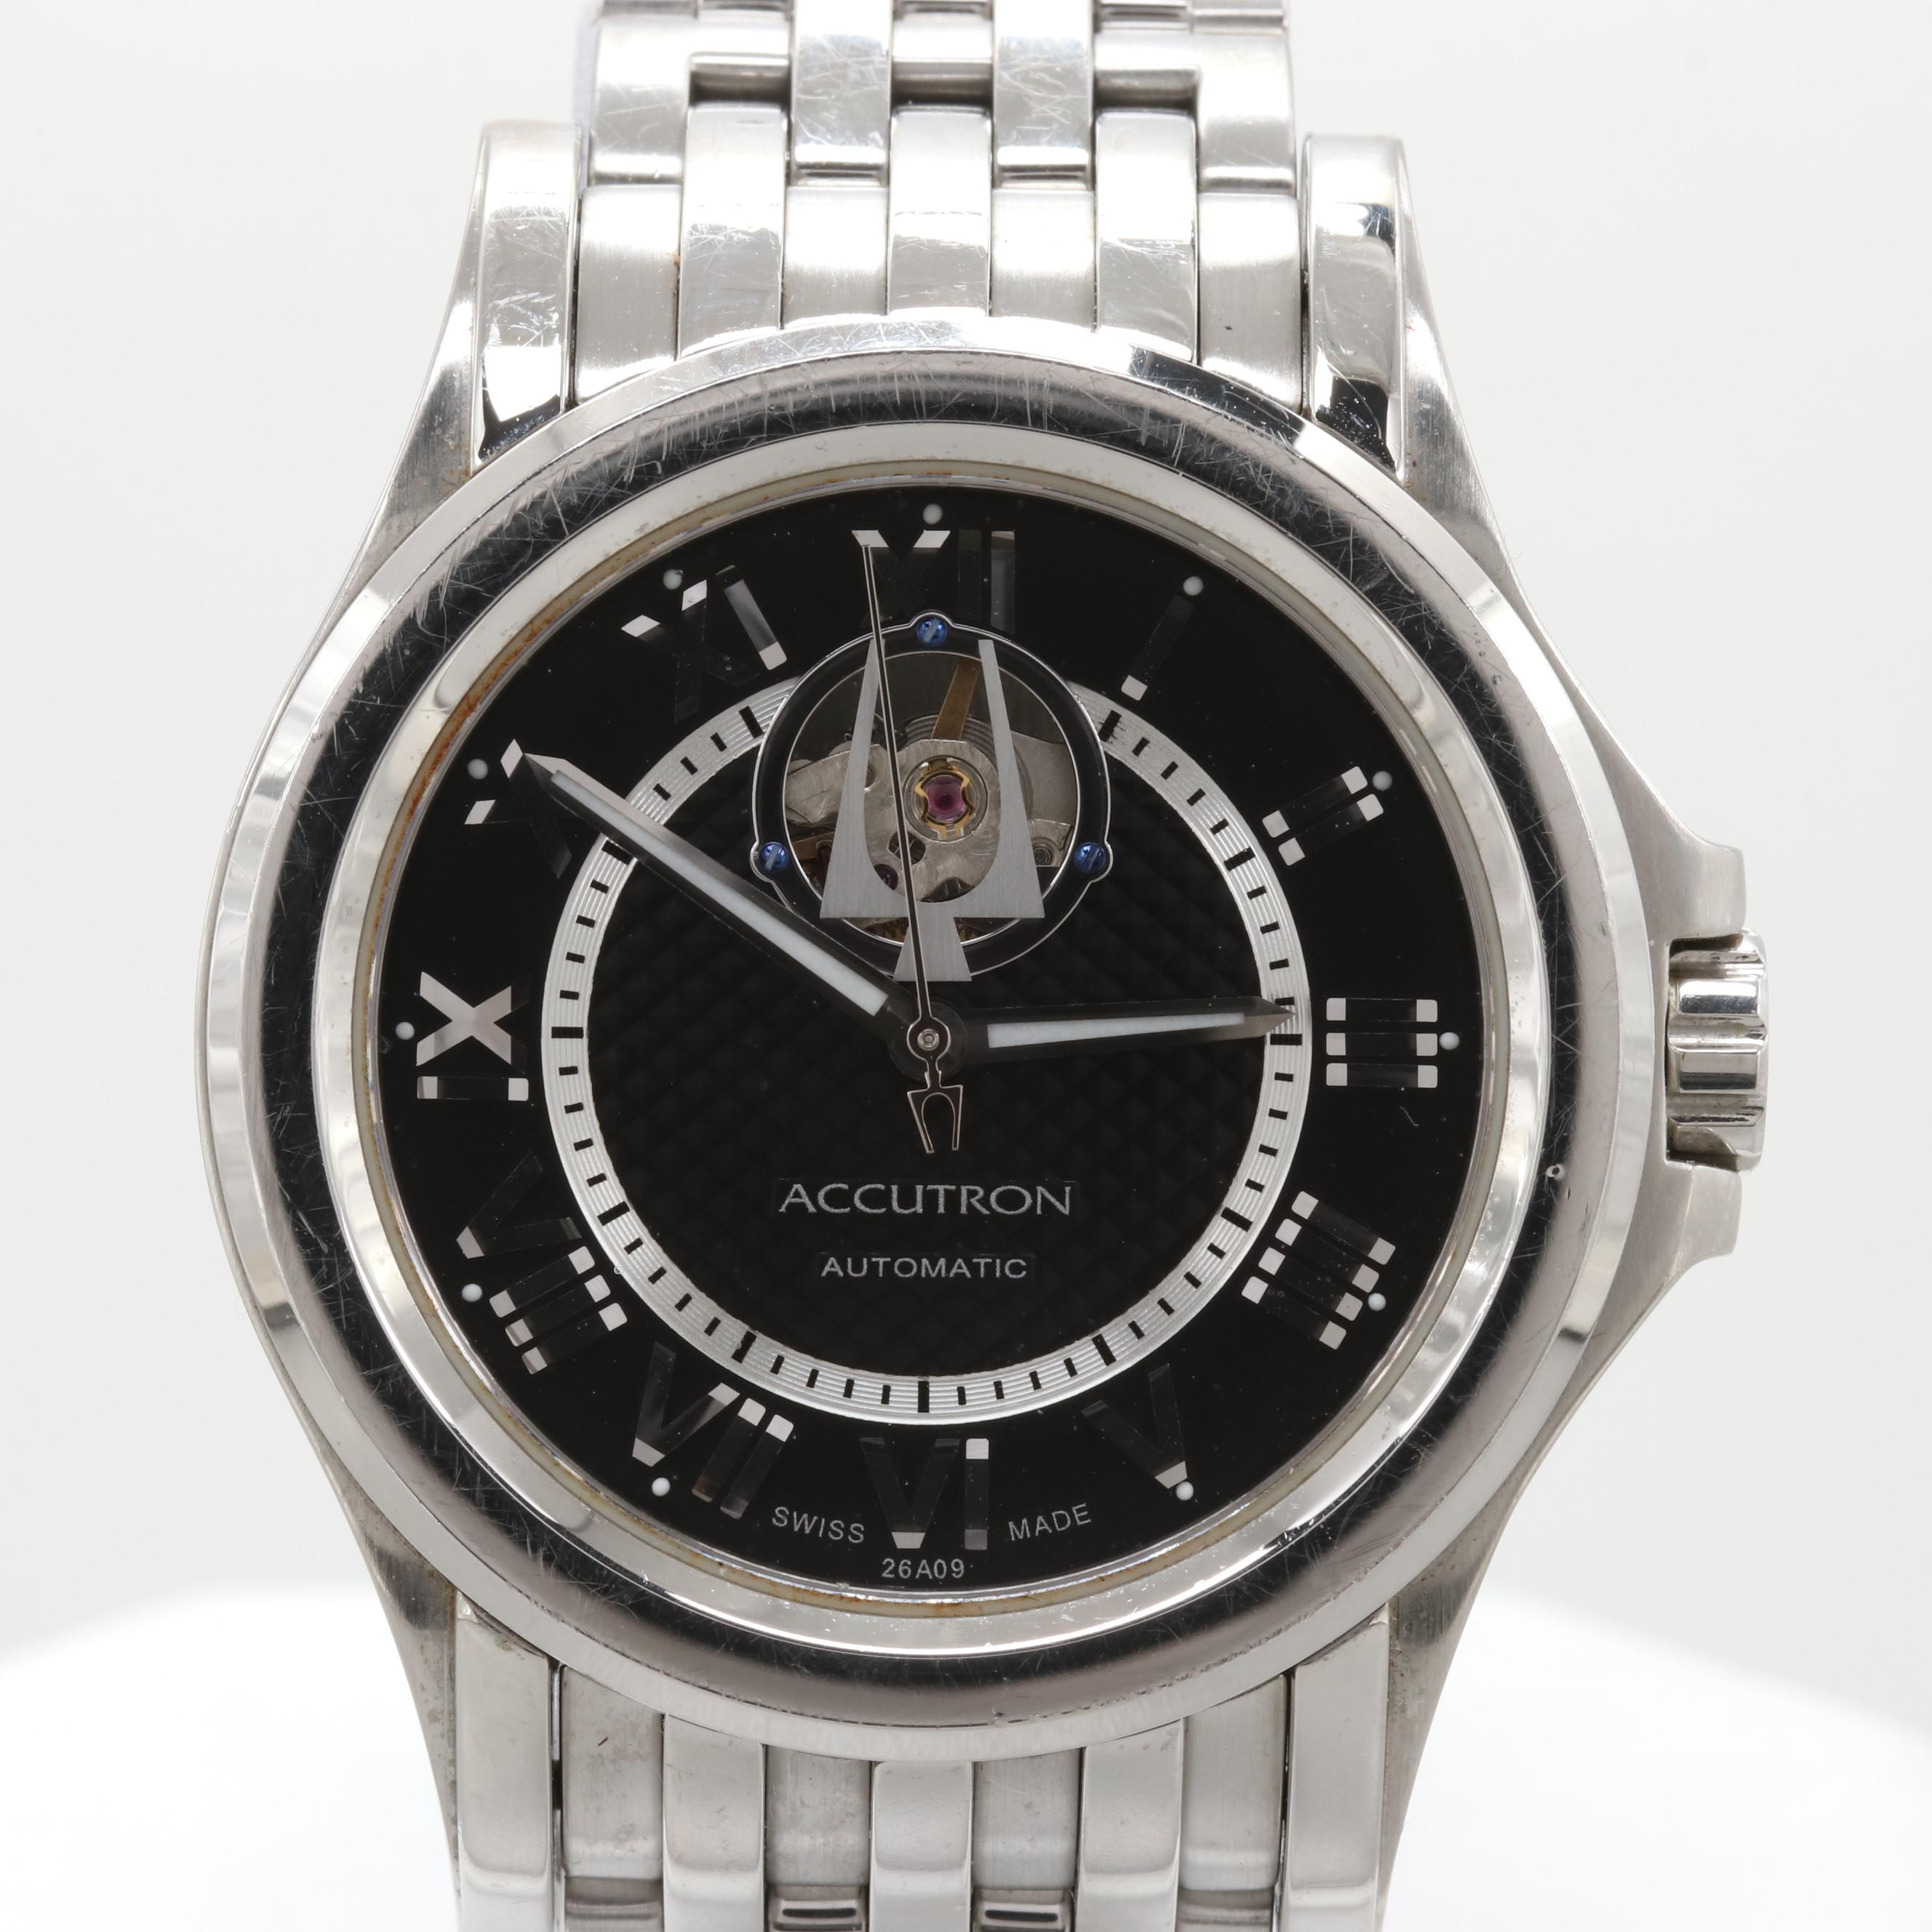 Bulova Accutron Gemini Stainless Steel Automatic Wristwatch